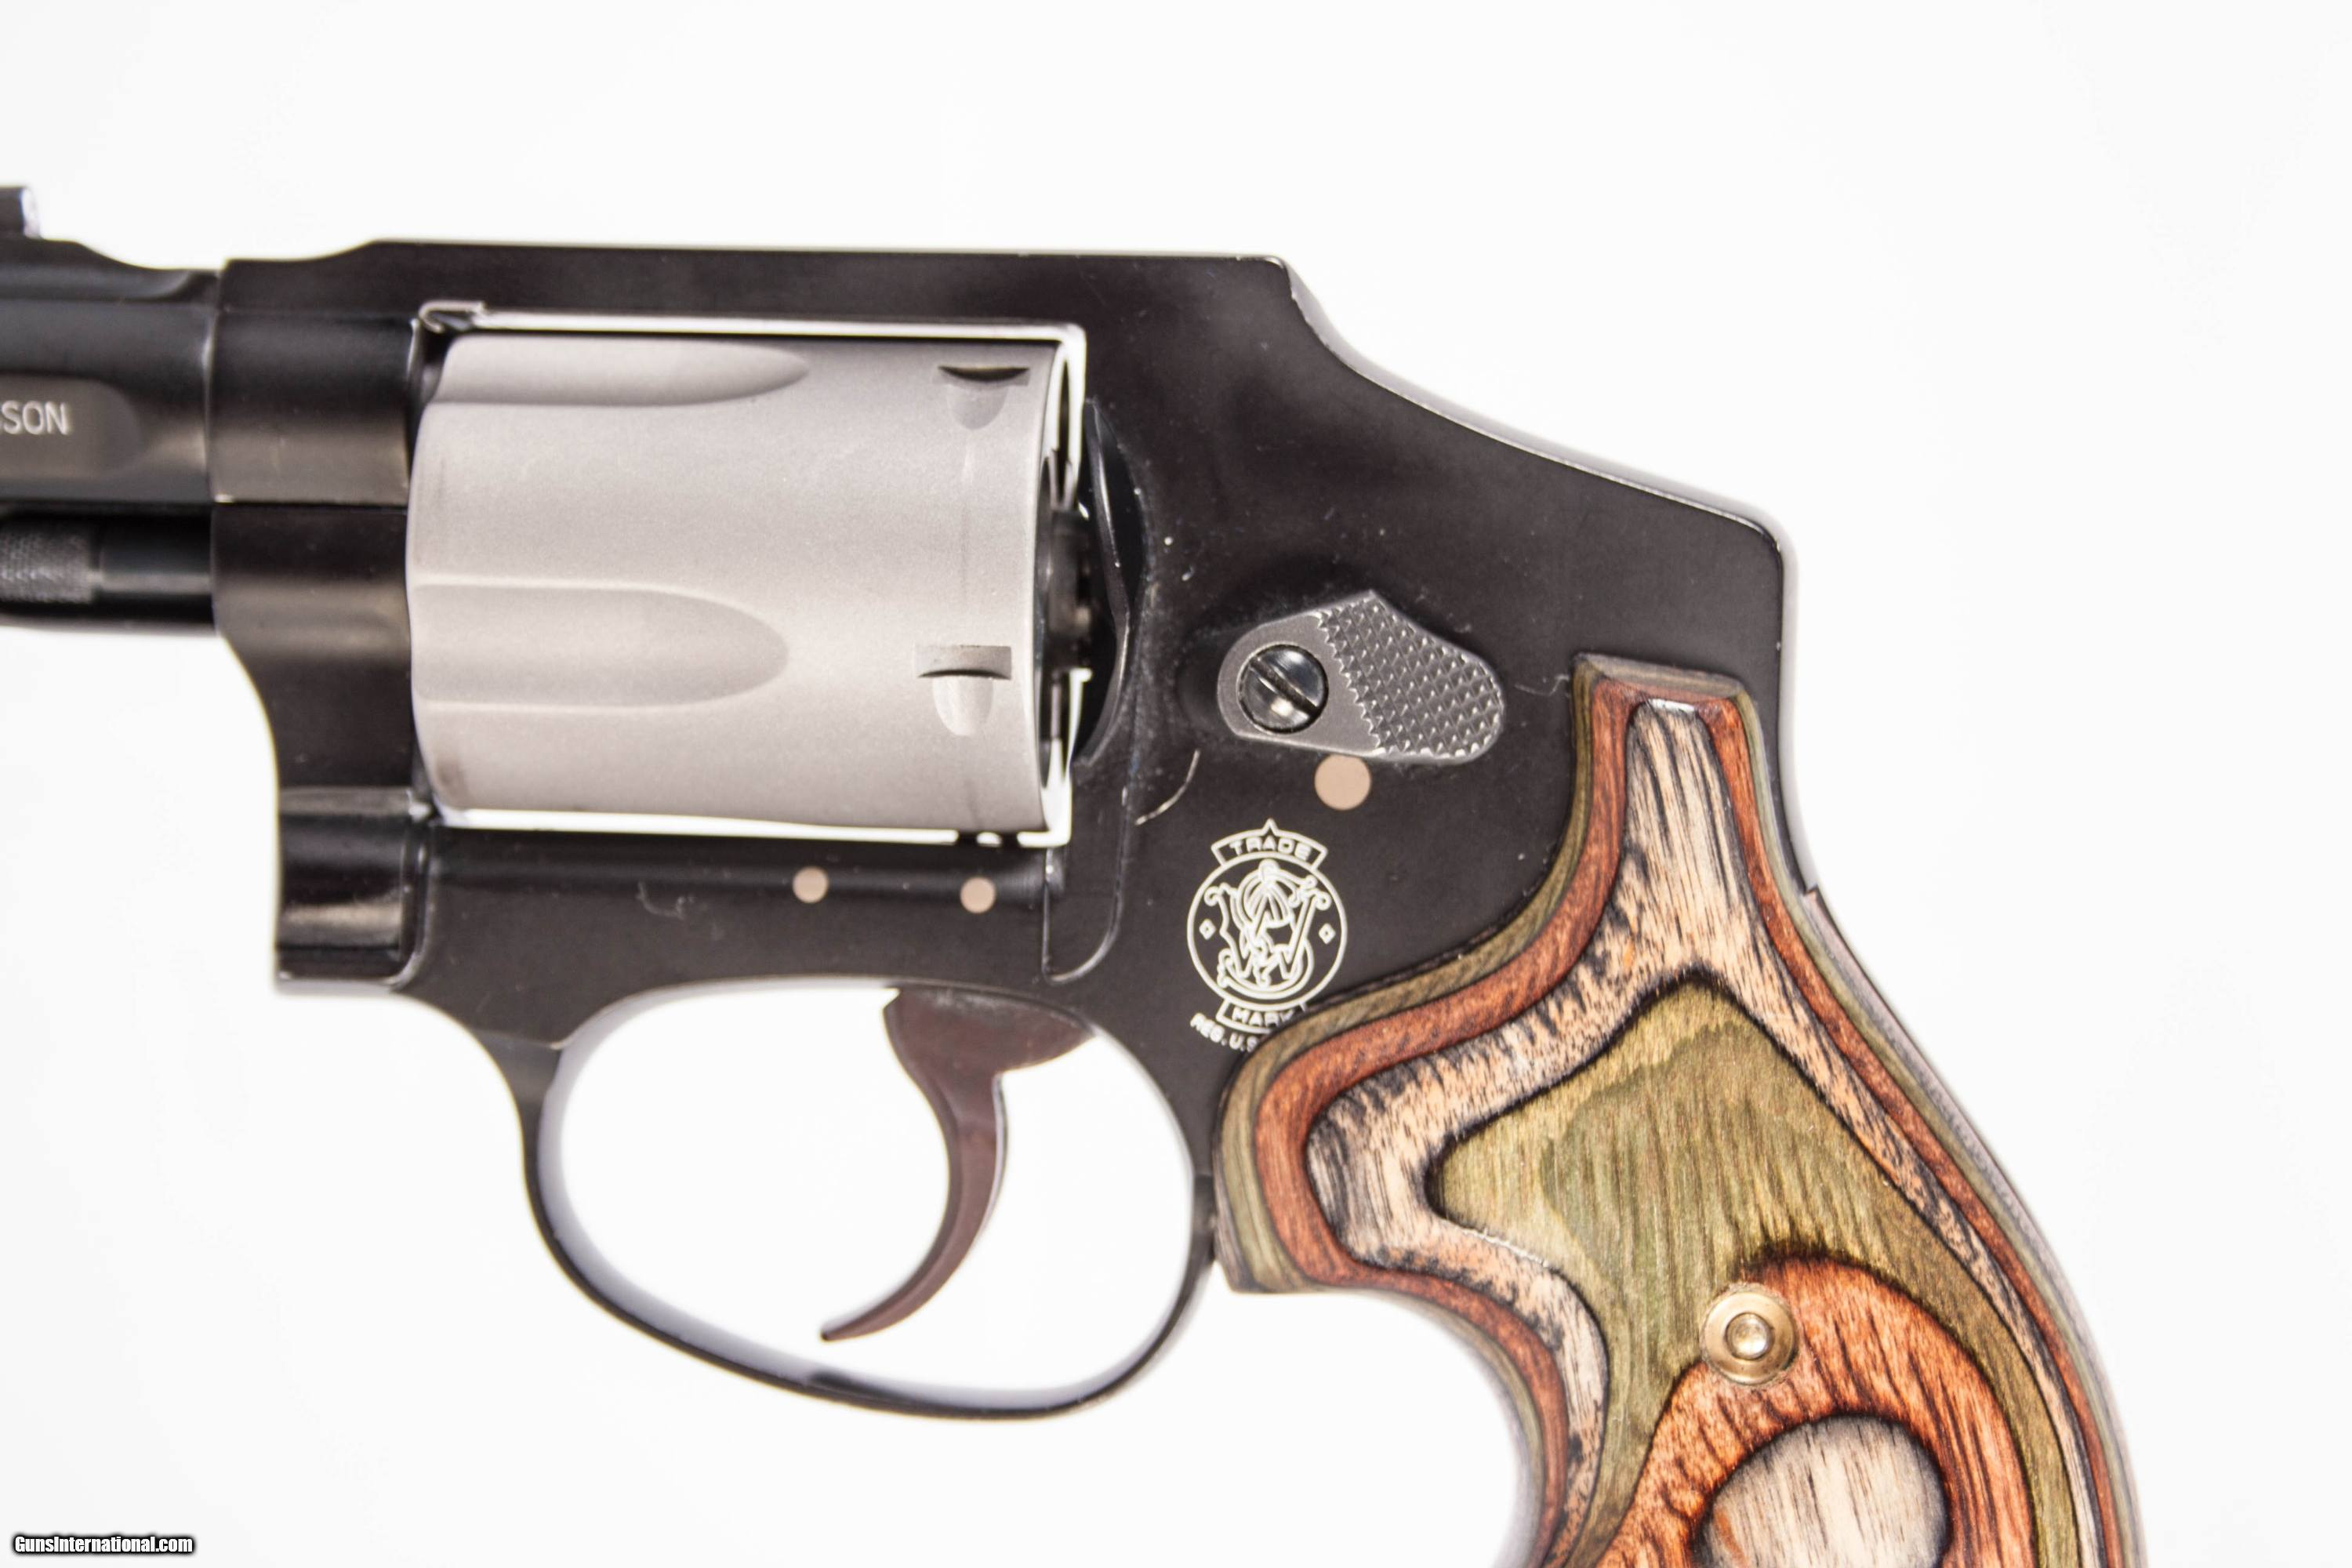 Smith & wesson model 500 — википедия. что такое smith & wesson model 500